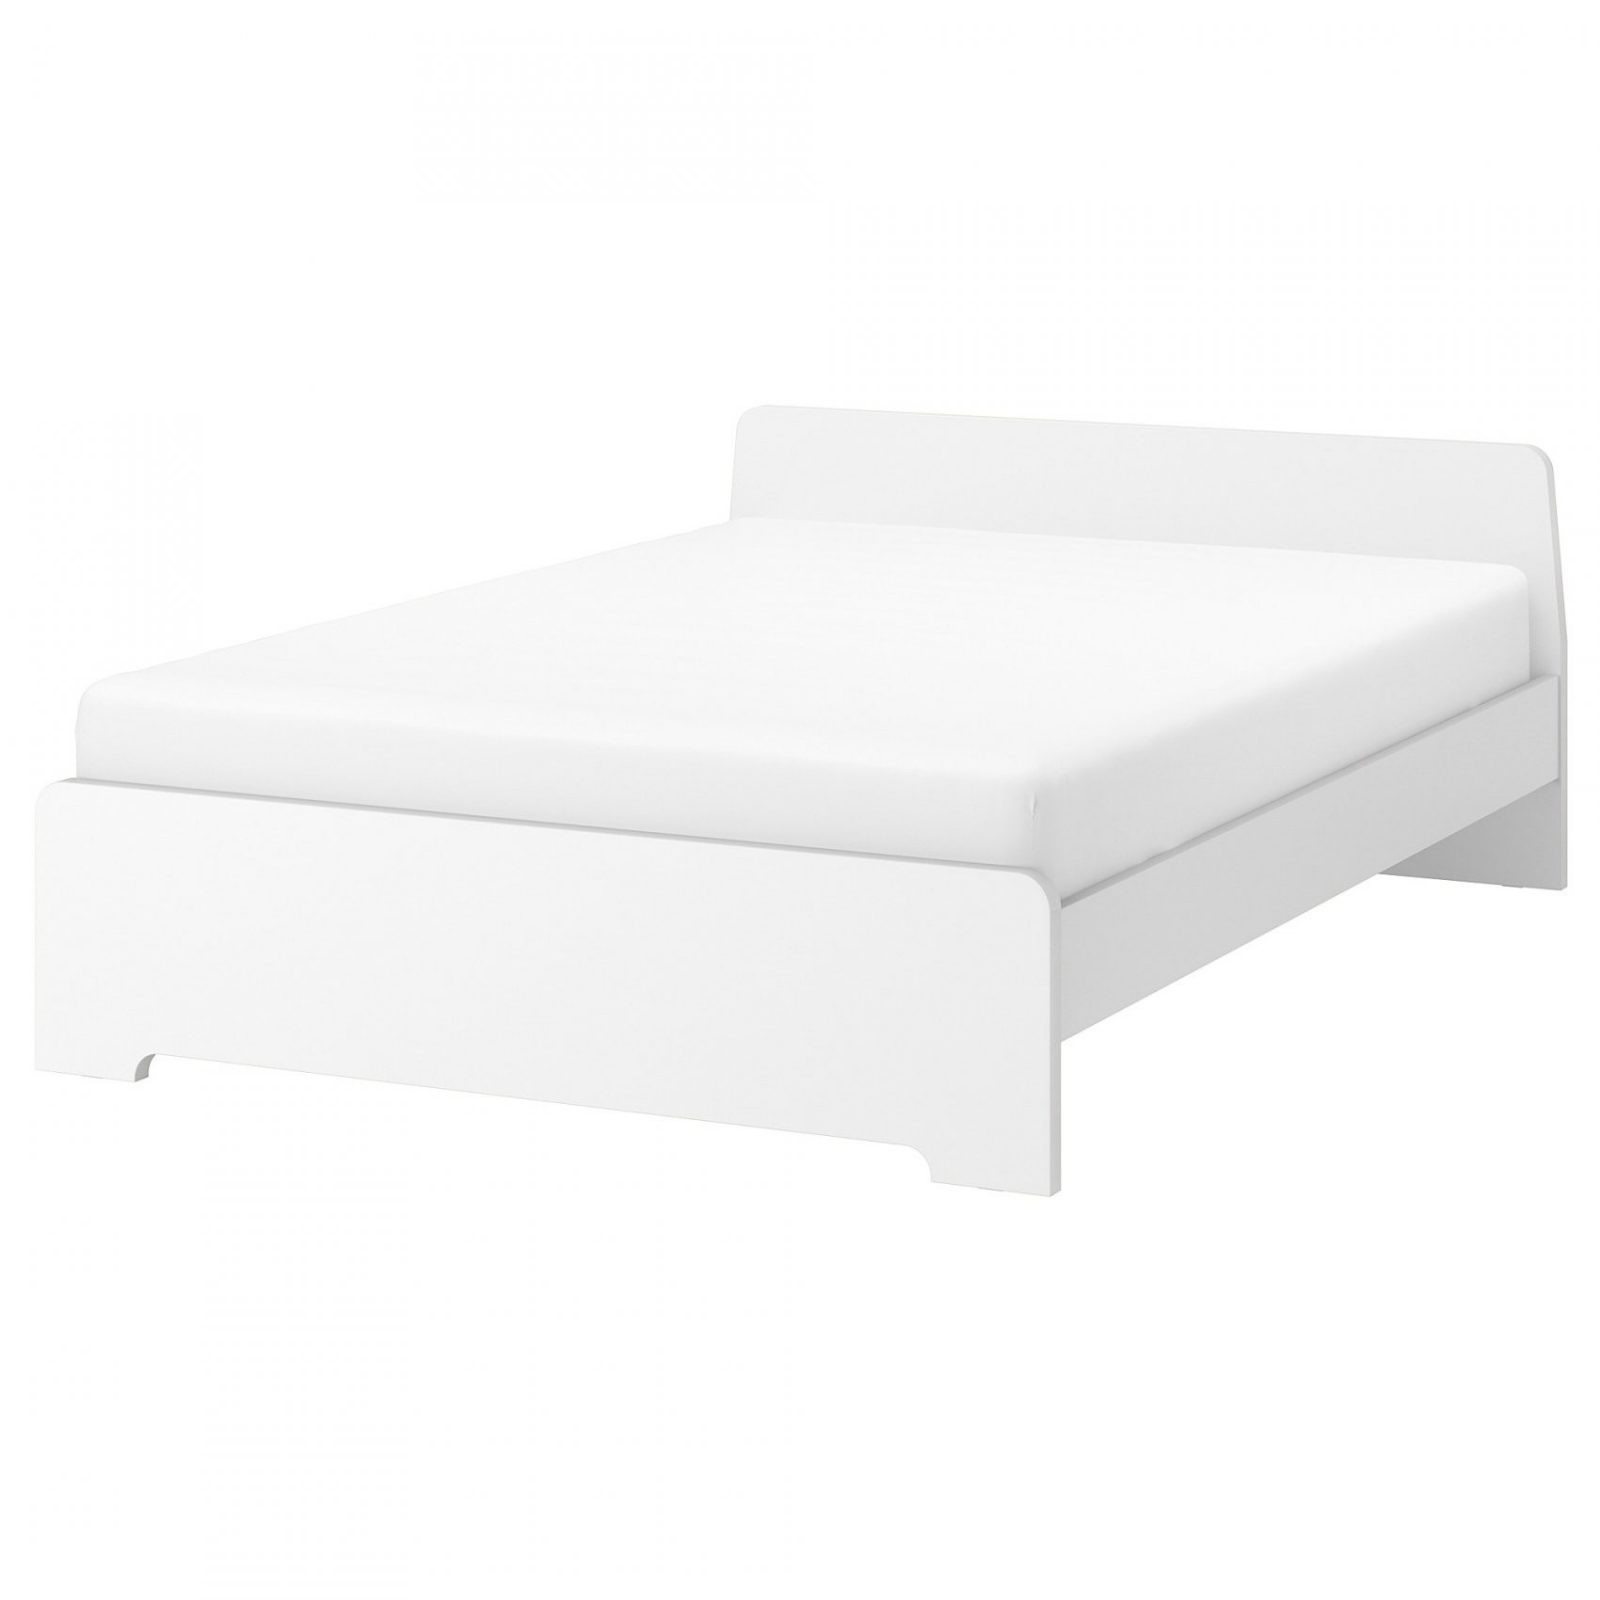 Askvoll Bettgestell  180X200 Cm   Ikea von Bett Ikea 200X200 Photo